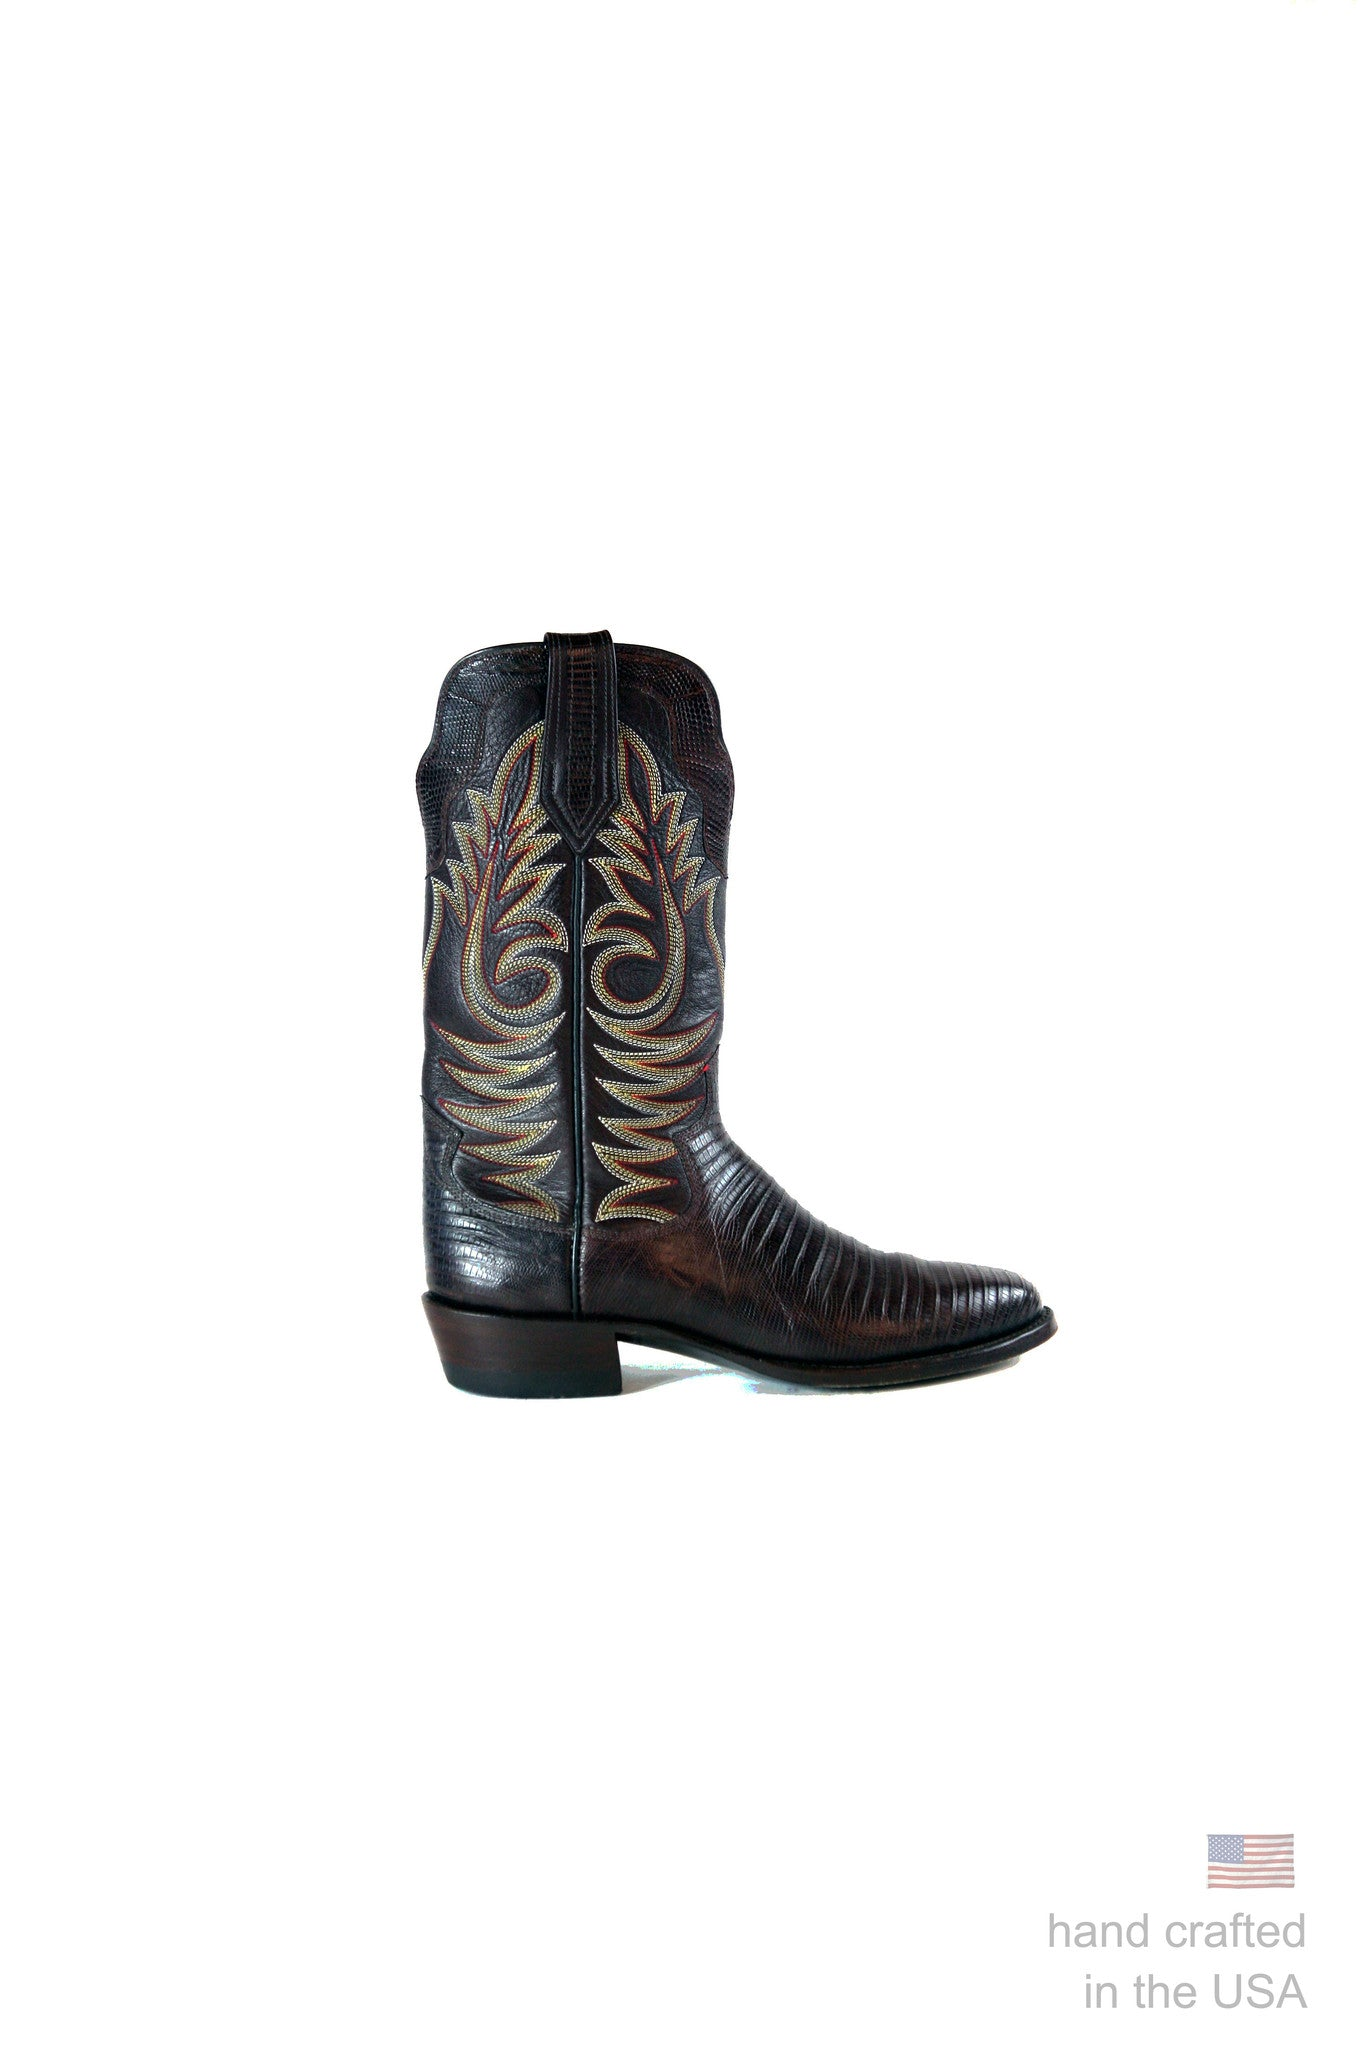 Singles: Boot 0005: Size 9 B